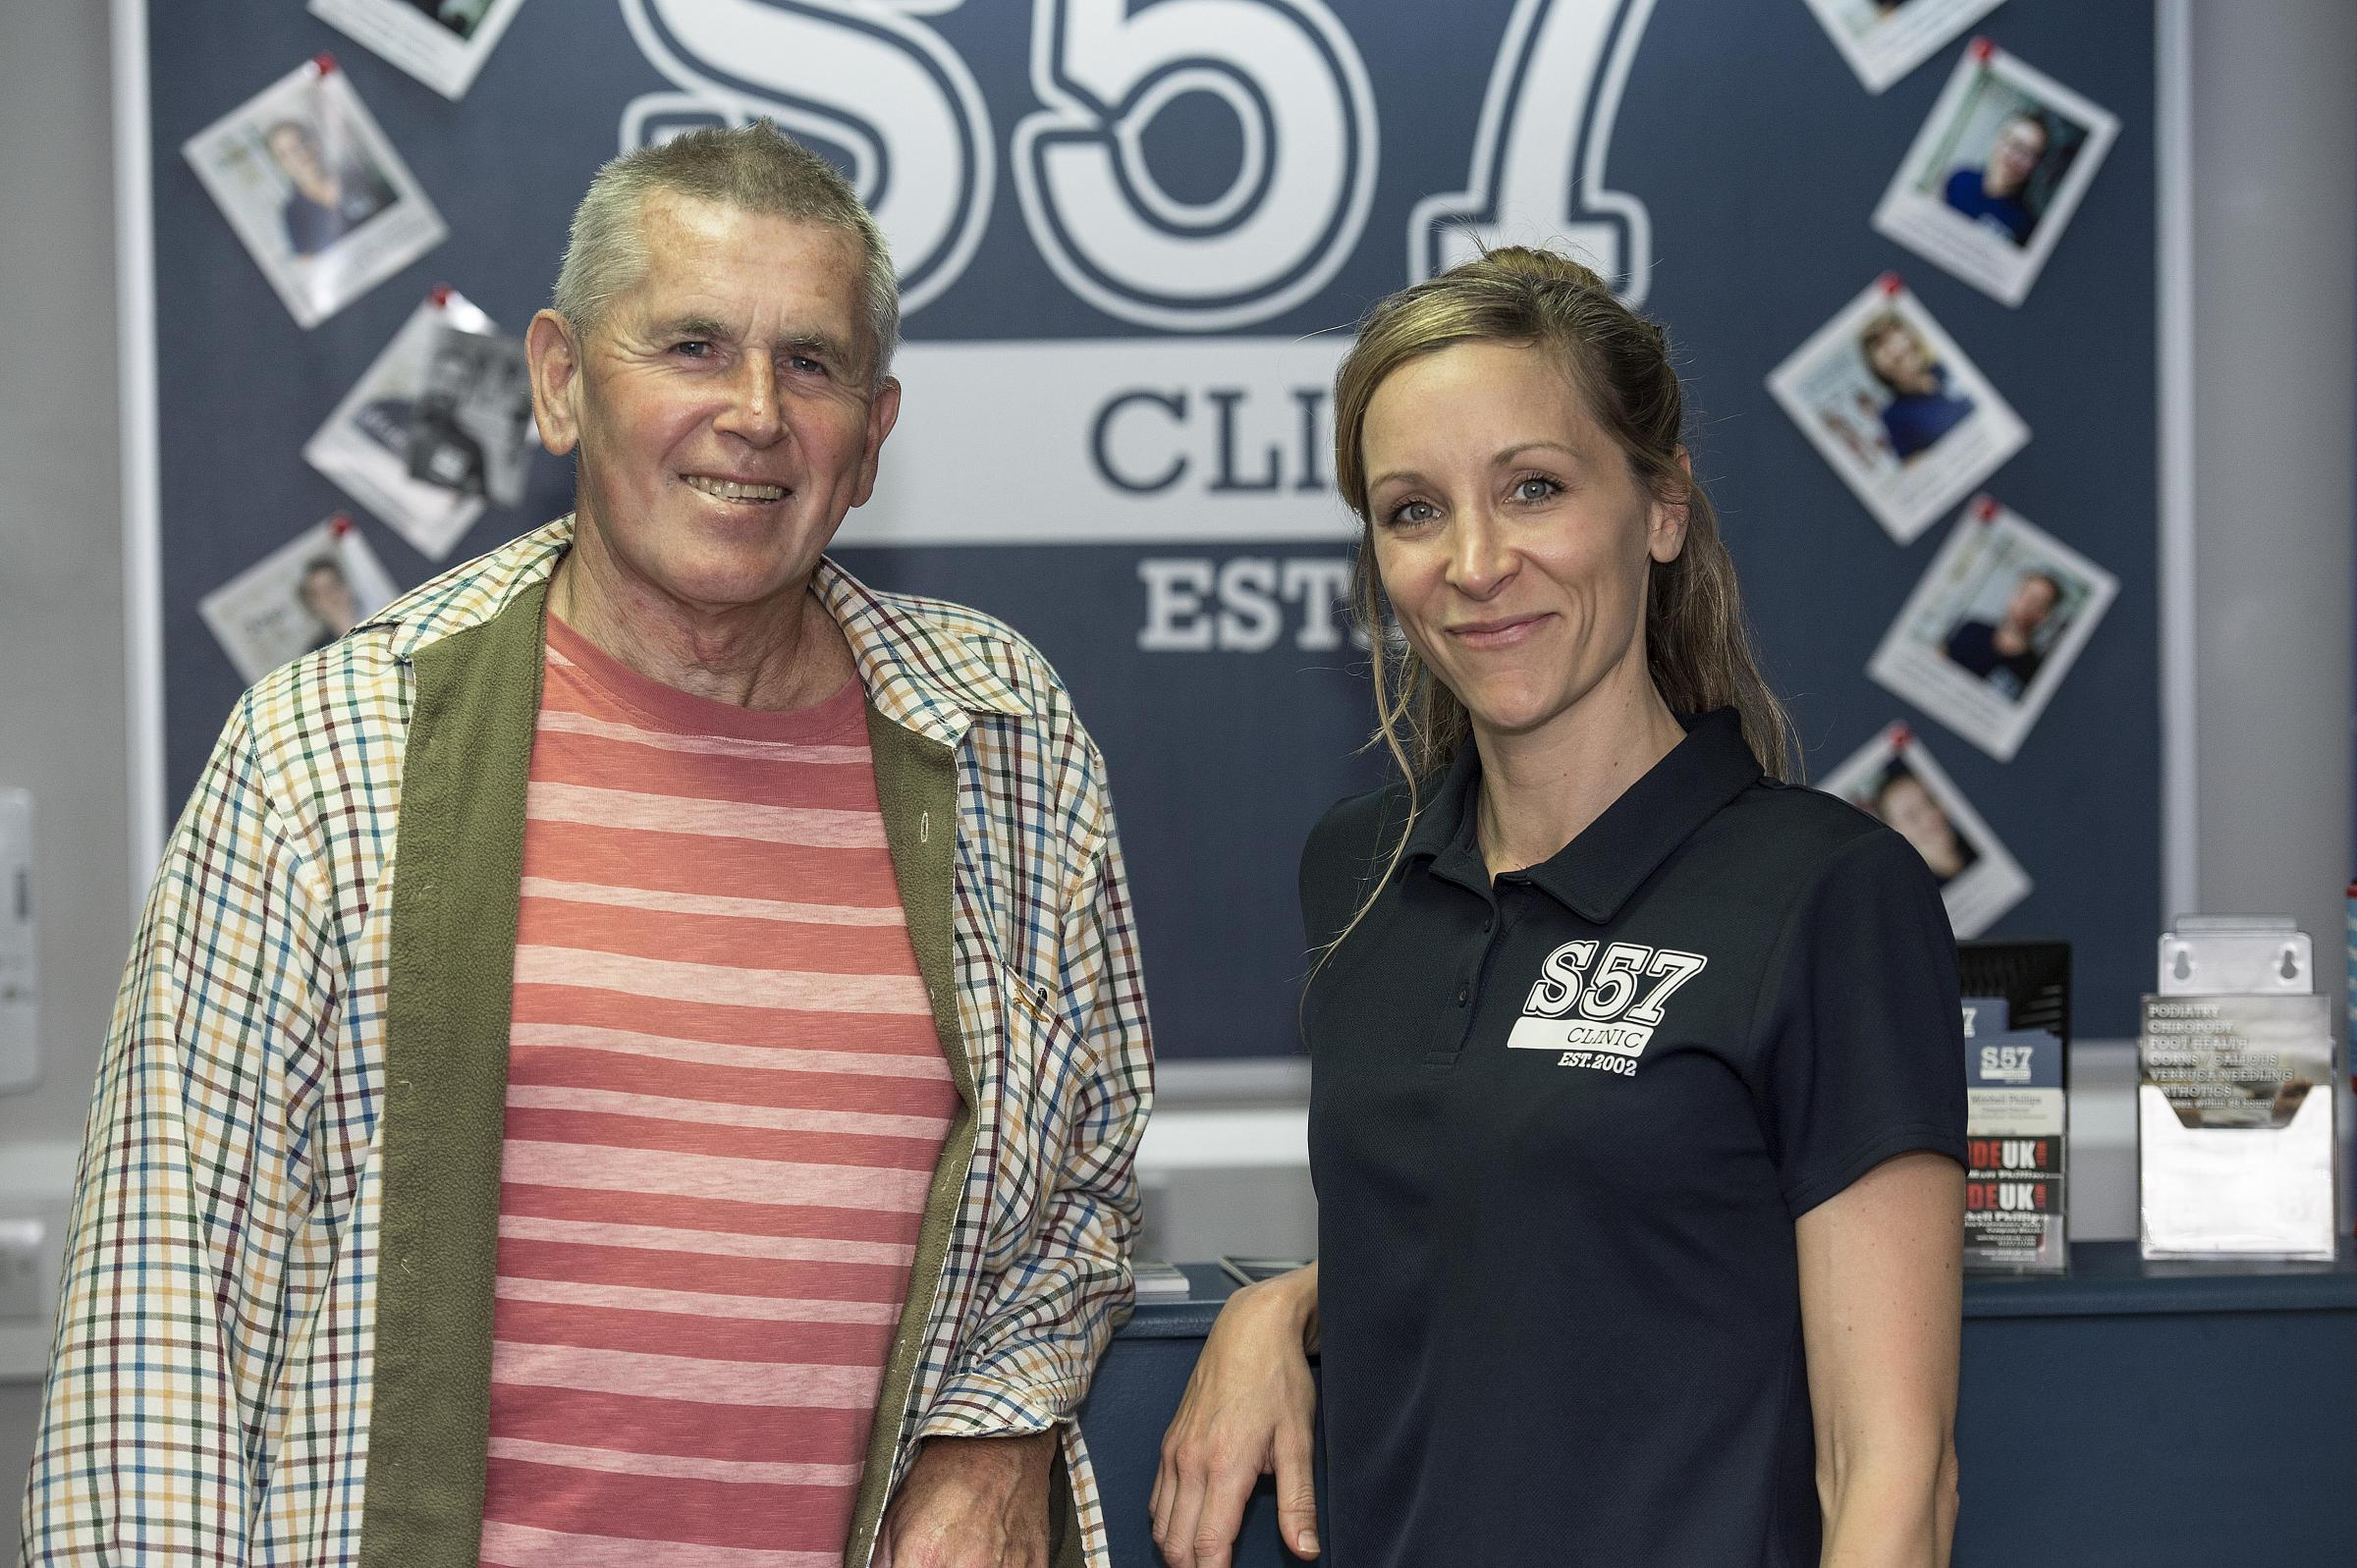 Richard Donovan and Elle Phillips at the Studio57 clinic in Hove